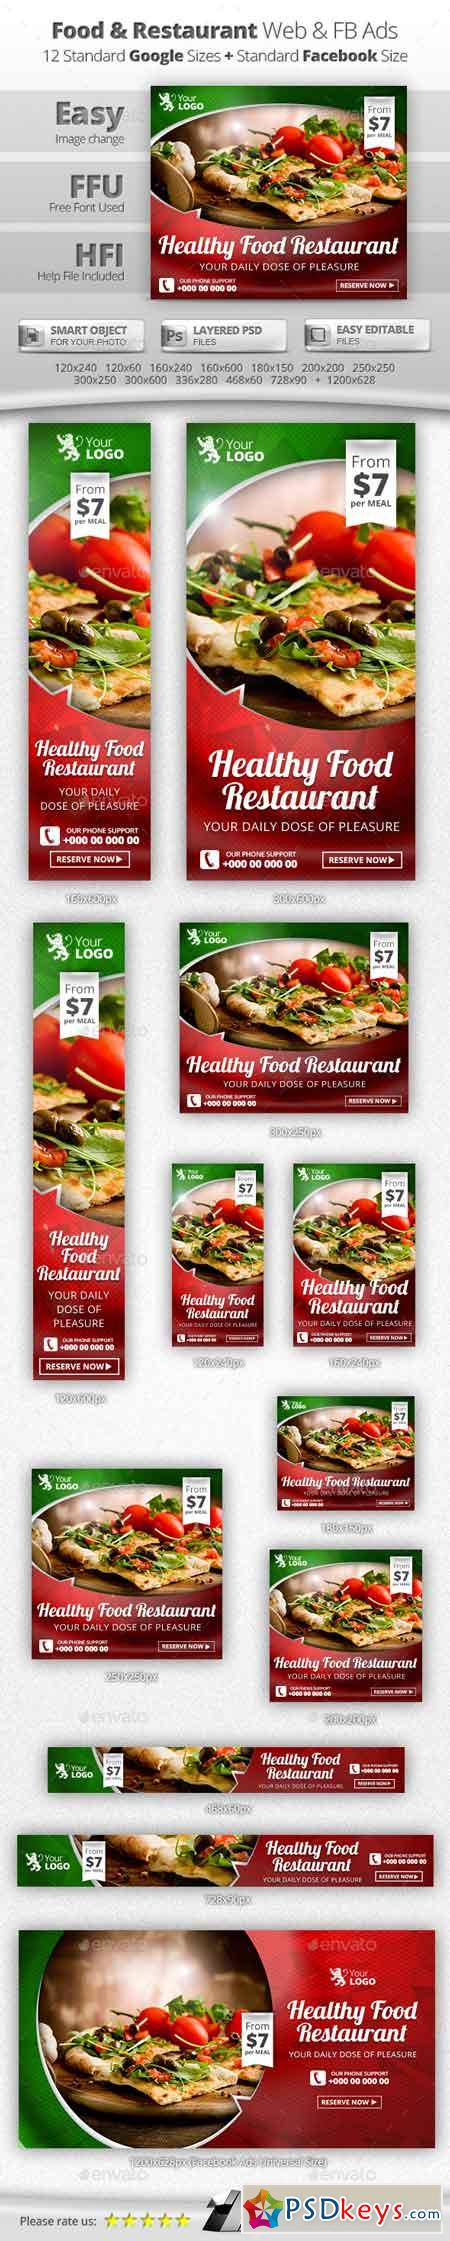 Food & Restaurant Web & Facebook Banners 11526063